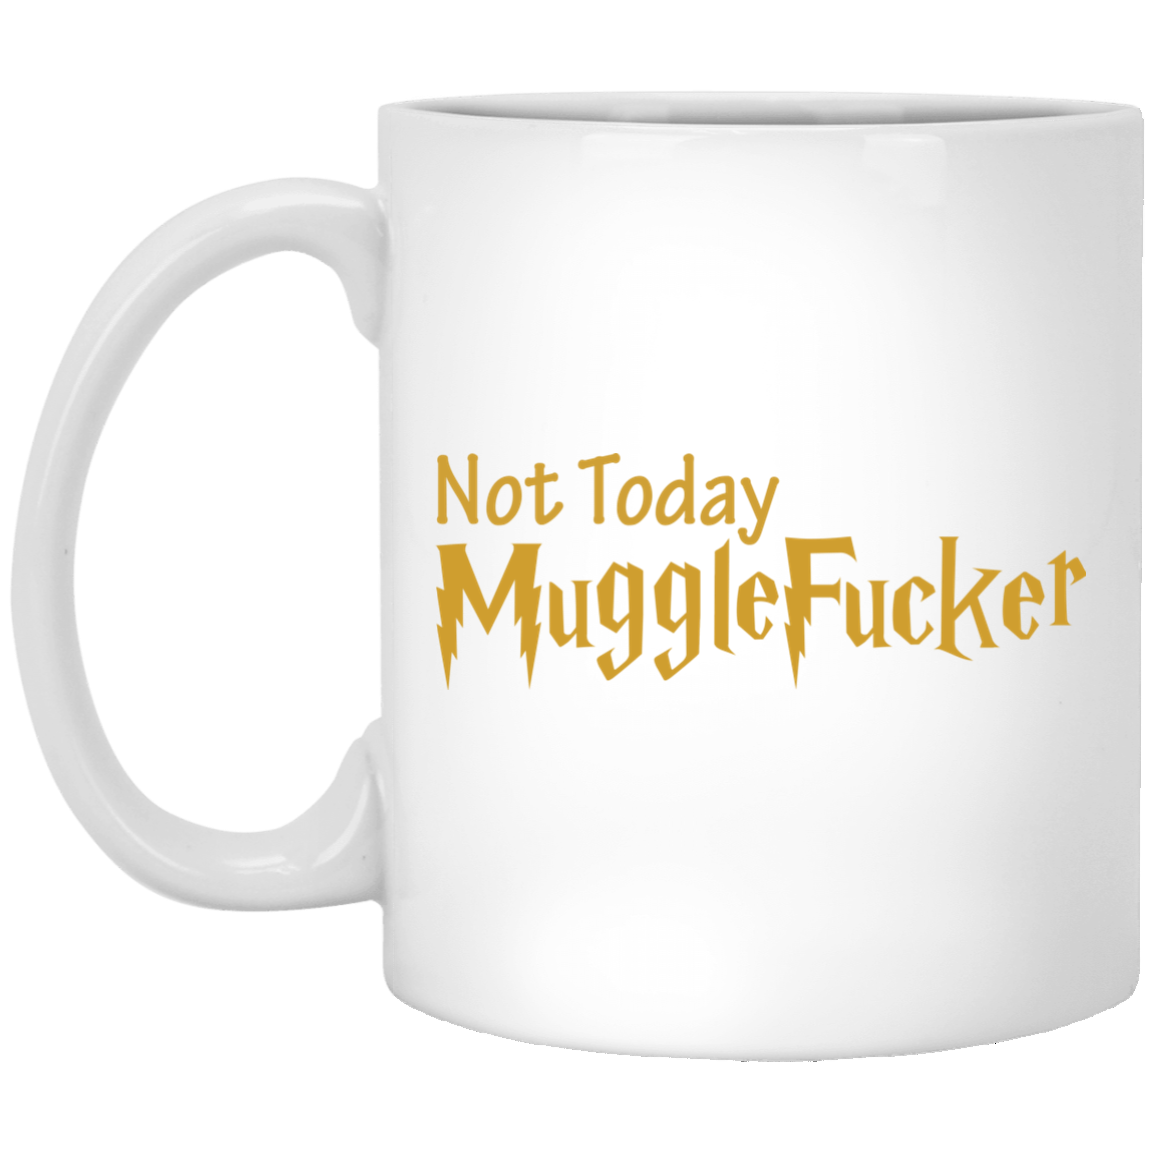 ad1fe8d135a Funny mug for Harry Potter fans: Not Today Mugglefucker, available in 11  and 15 oz mug from $12.99. Get yours now!